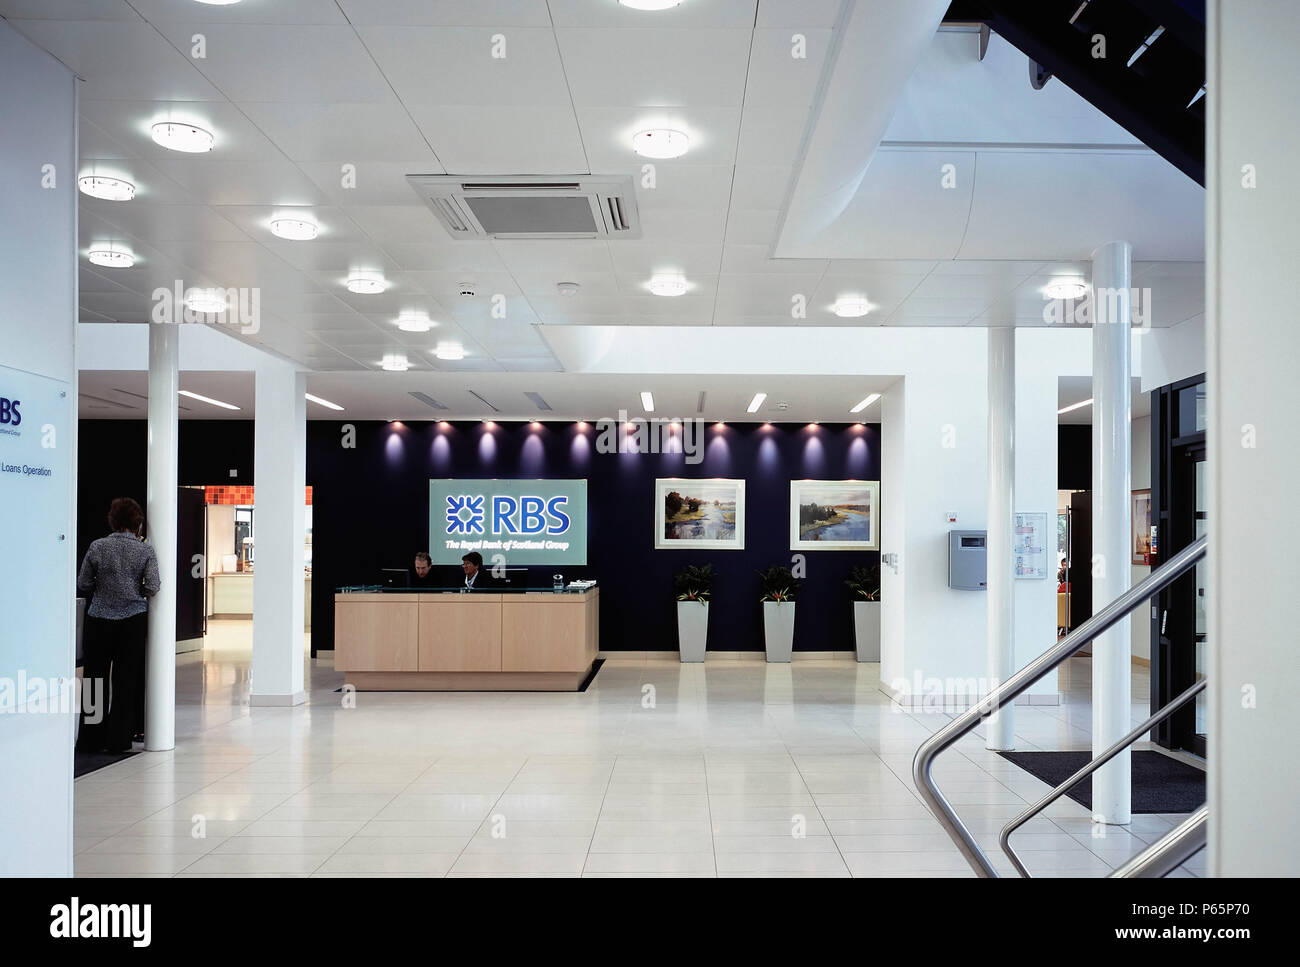 Royal Bank of Scotland (RBS) offices reception area - Stock Image